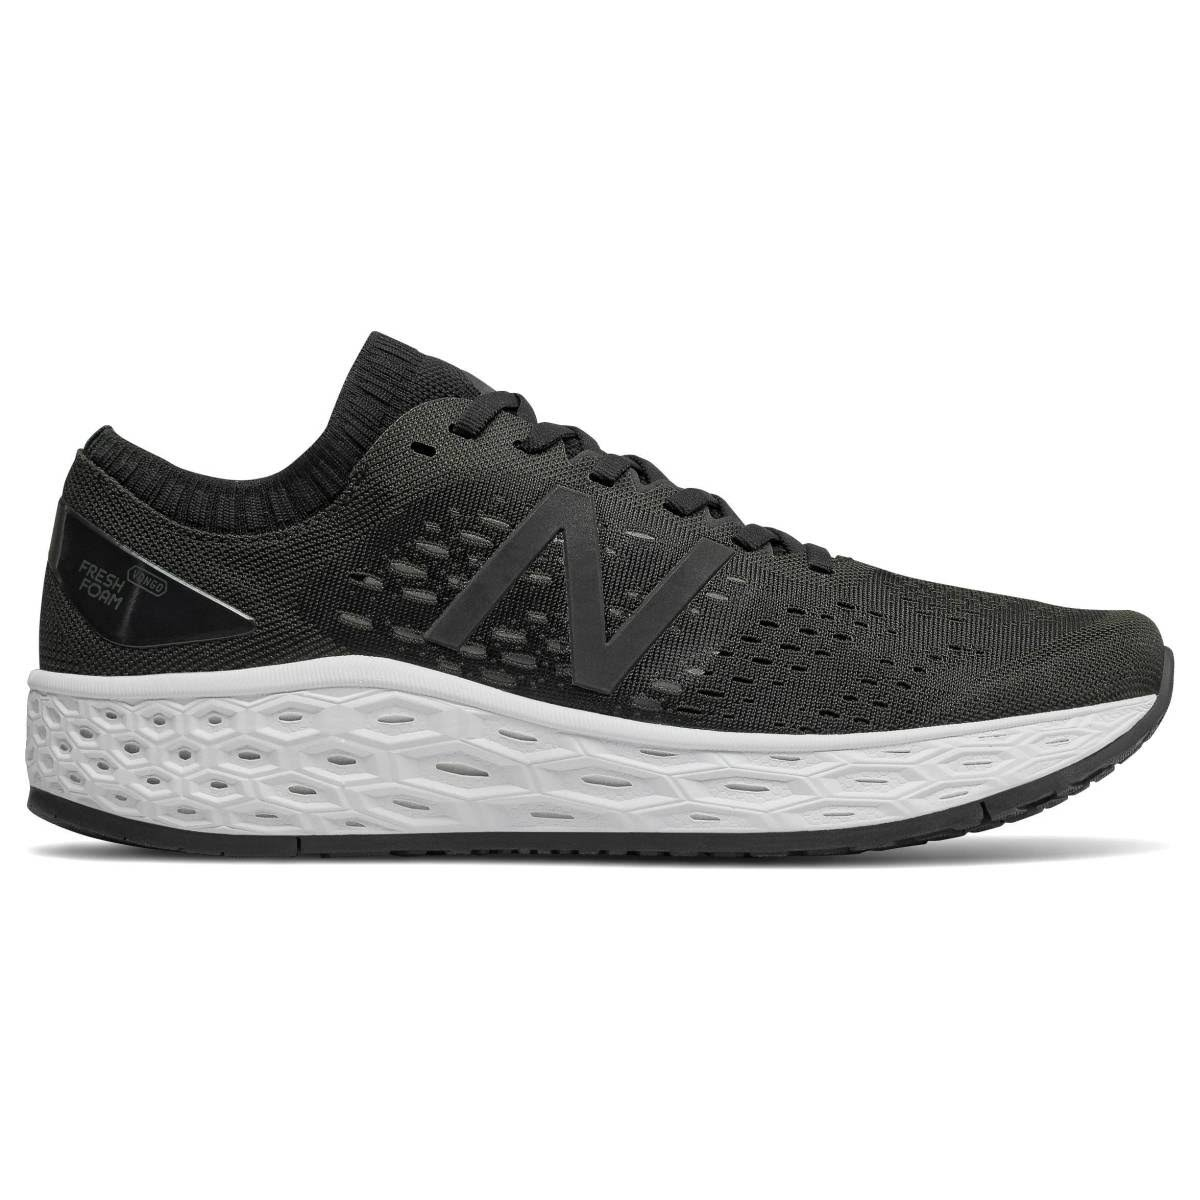 New Balance Men's Fresh Foam Vongo v4 Black 11.5 D - Running